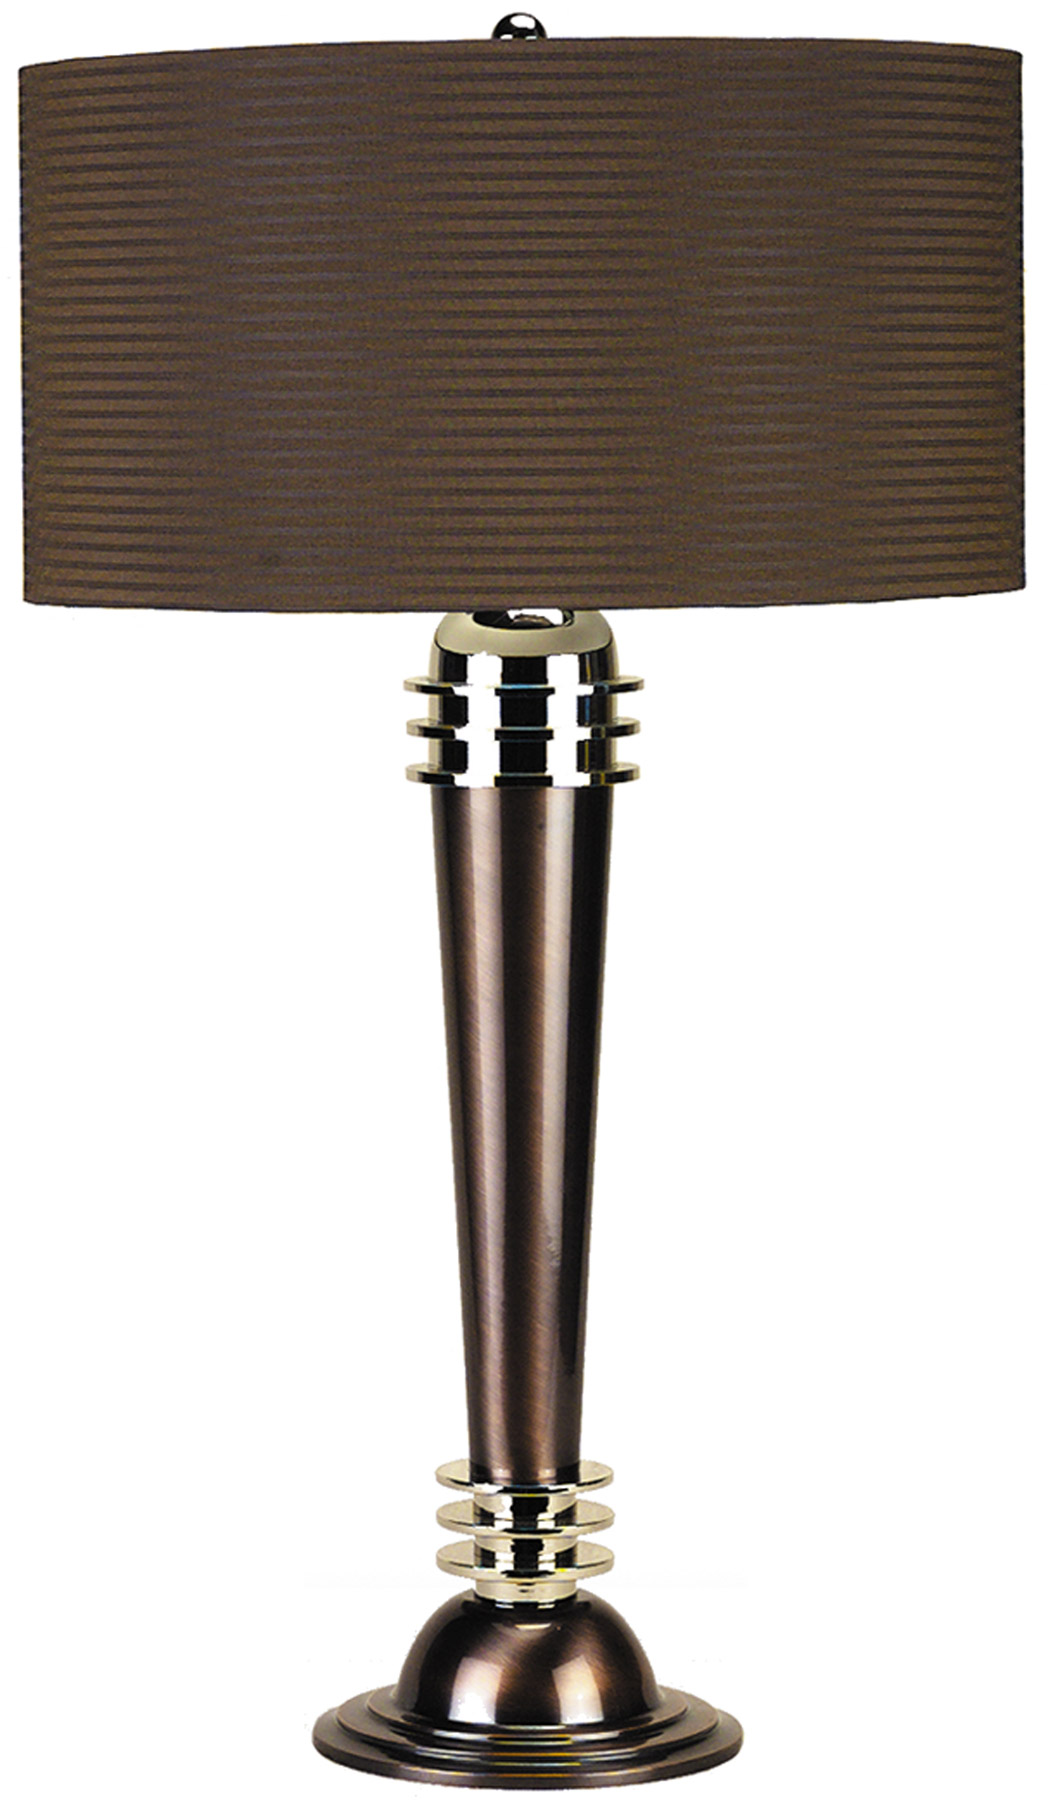 frederick cooper table lamps photo - 8